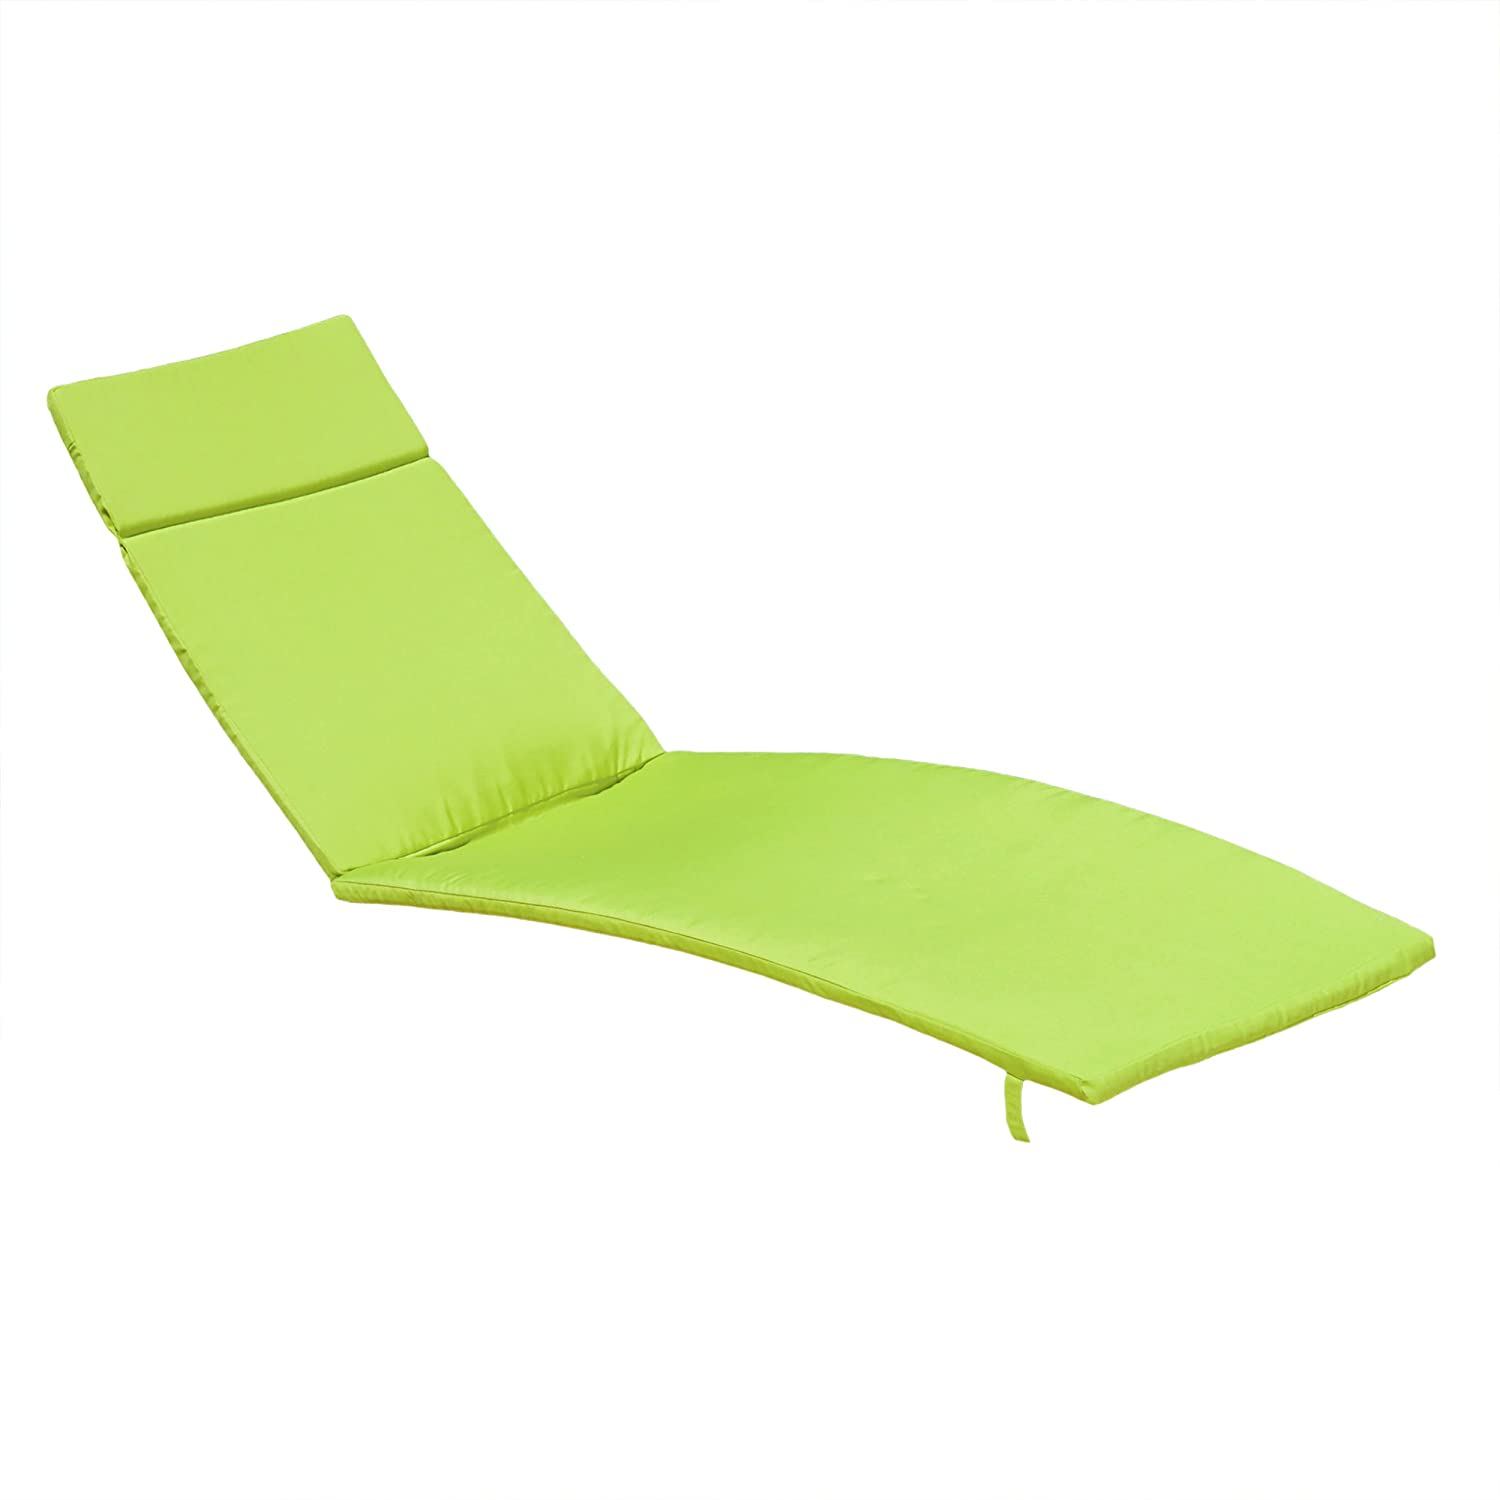 collection head and come colour plus base cushion style in green with also for lounge design chaise metal black leg one modern excellent